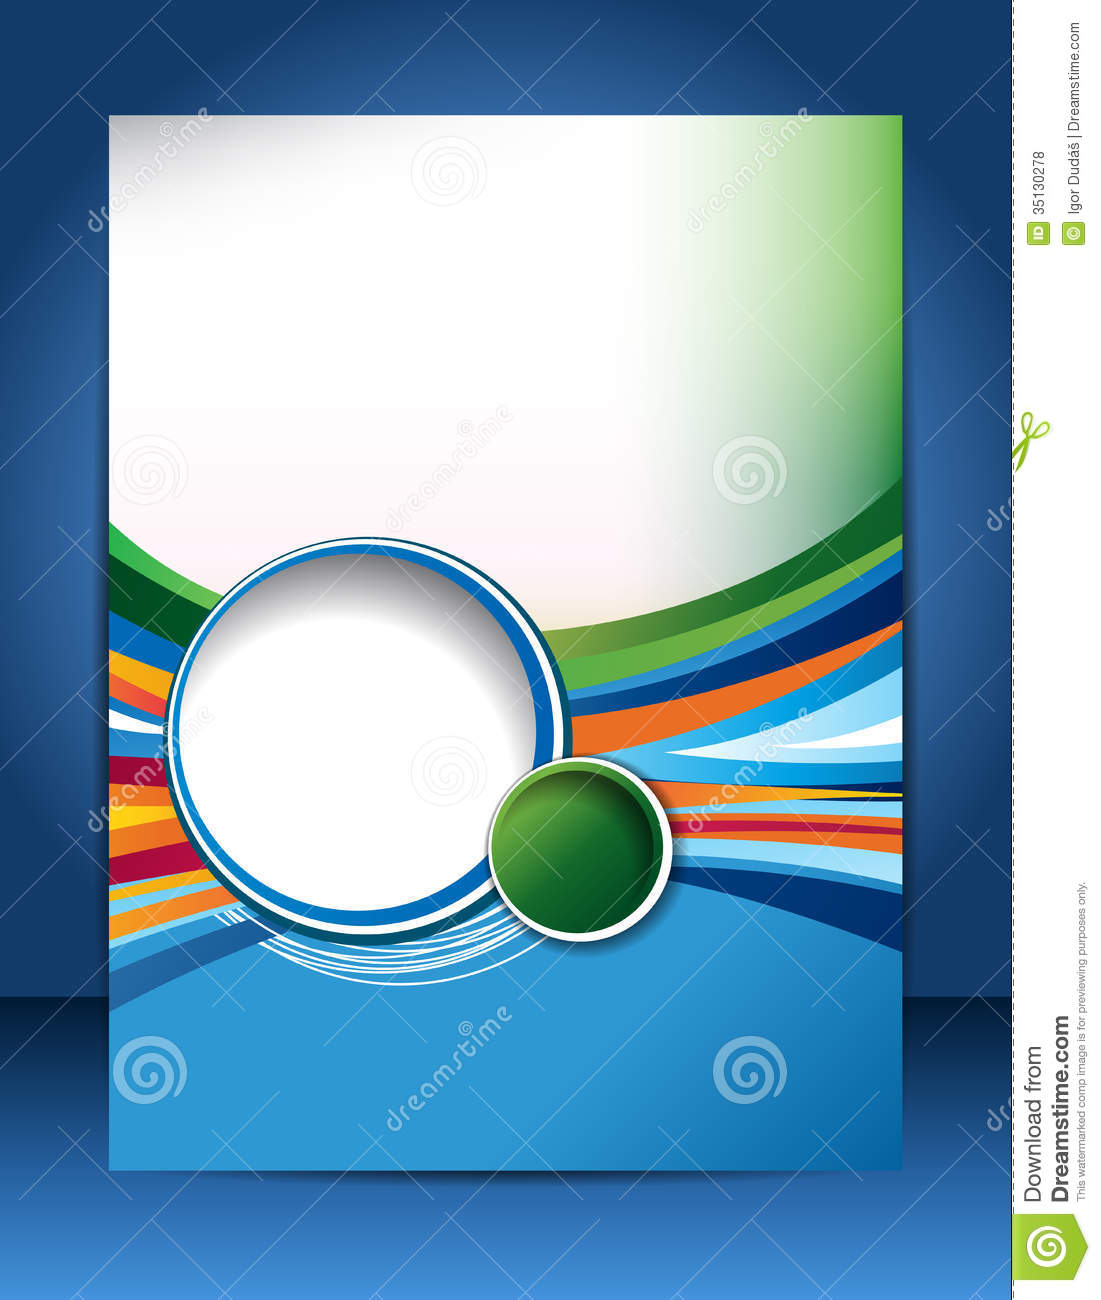 brochure design stock illustration illustration of banner 35130278